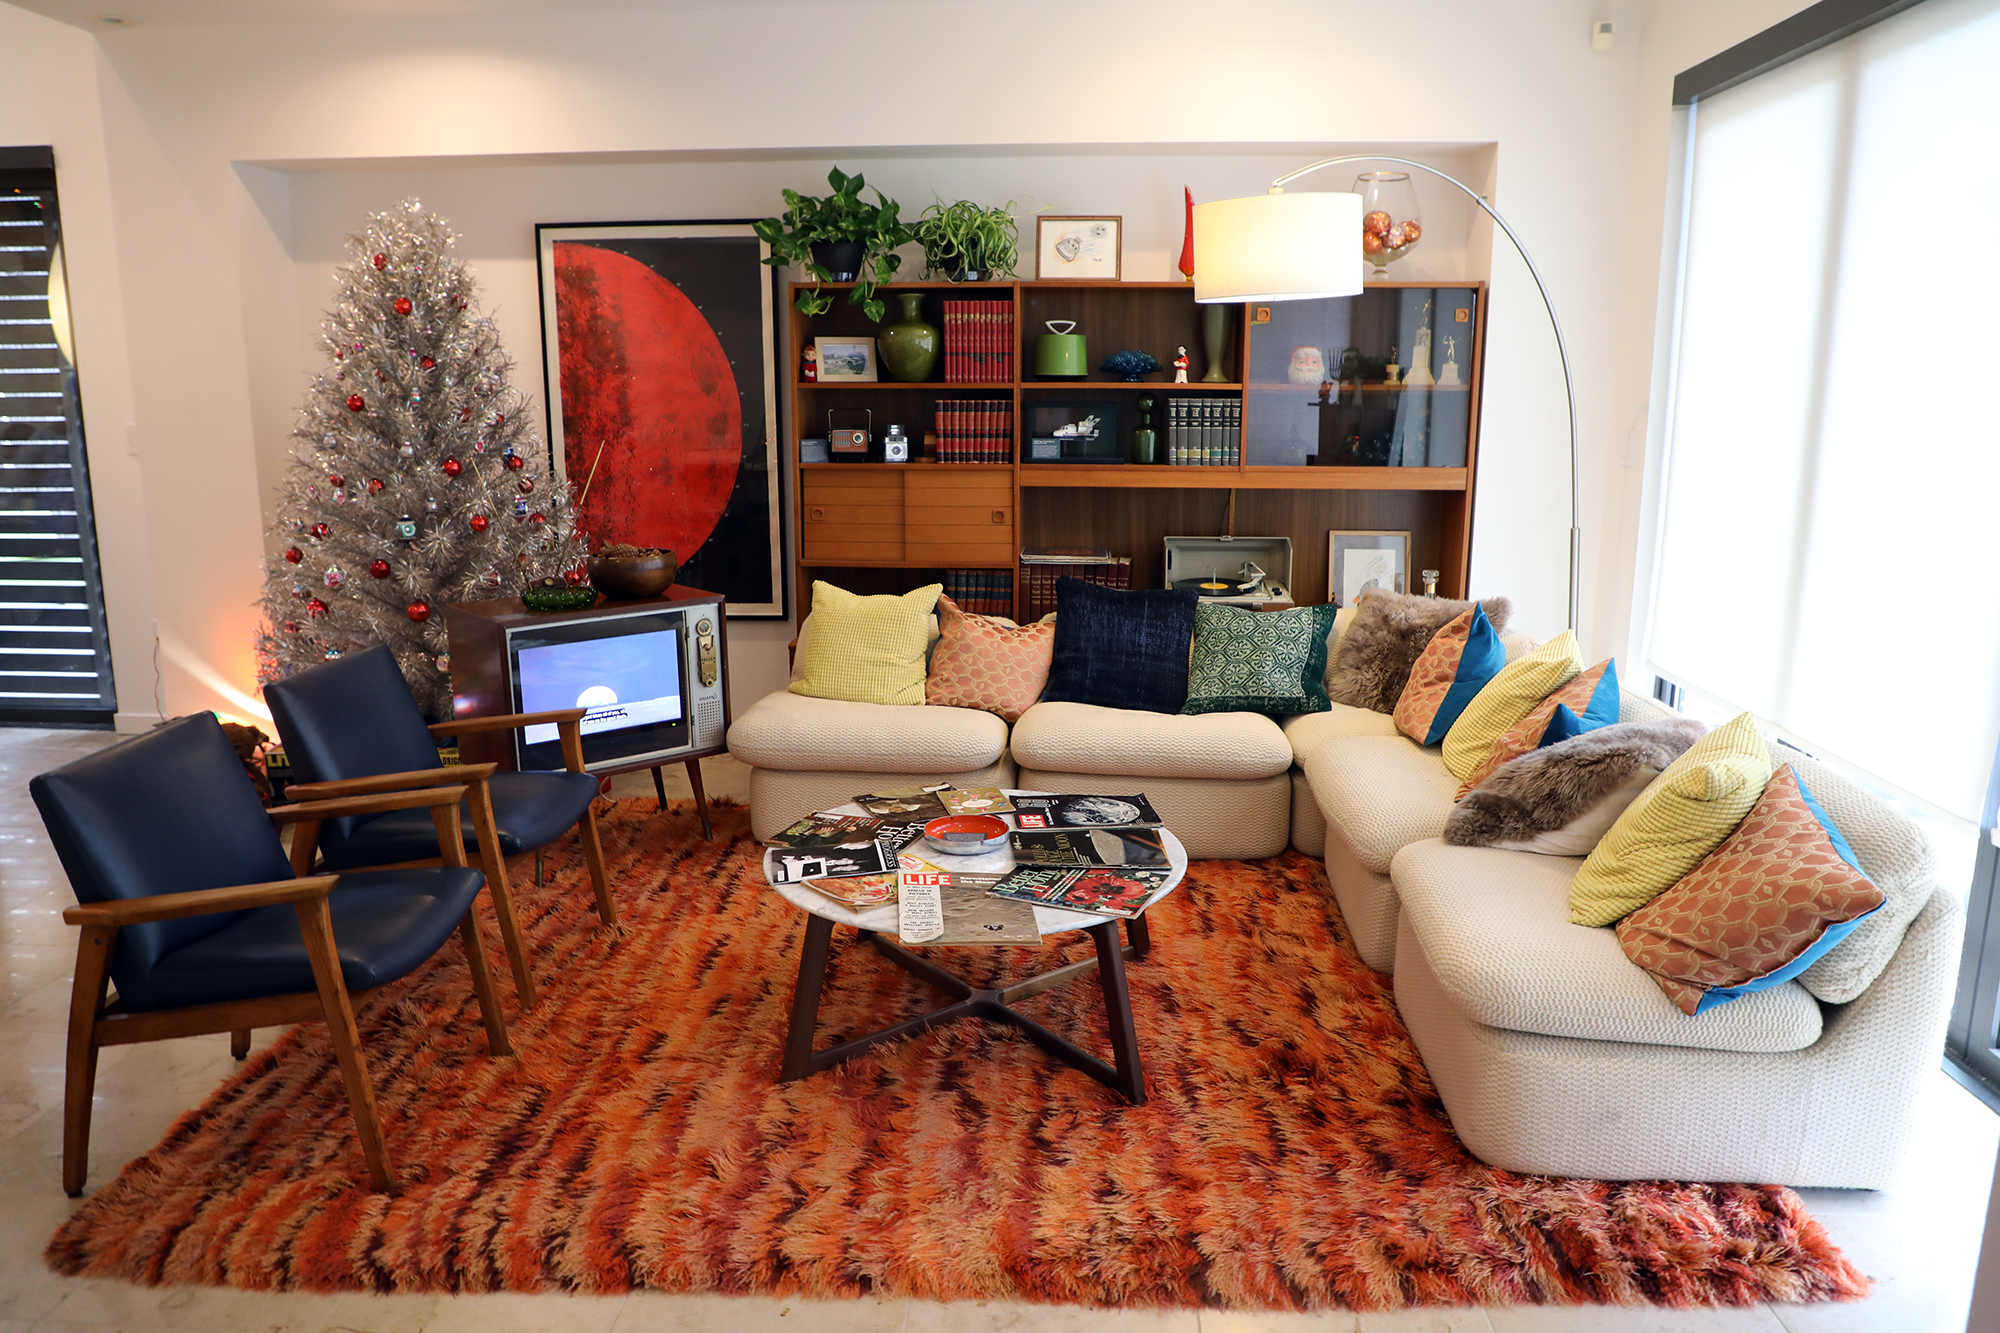 Moon Room 1968 is a replica of a midcentury living room, complete with a retro television set. (Arionne Nettles/WBEZ)